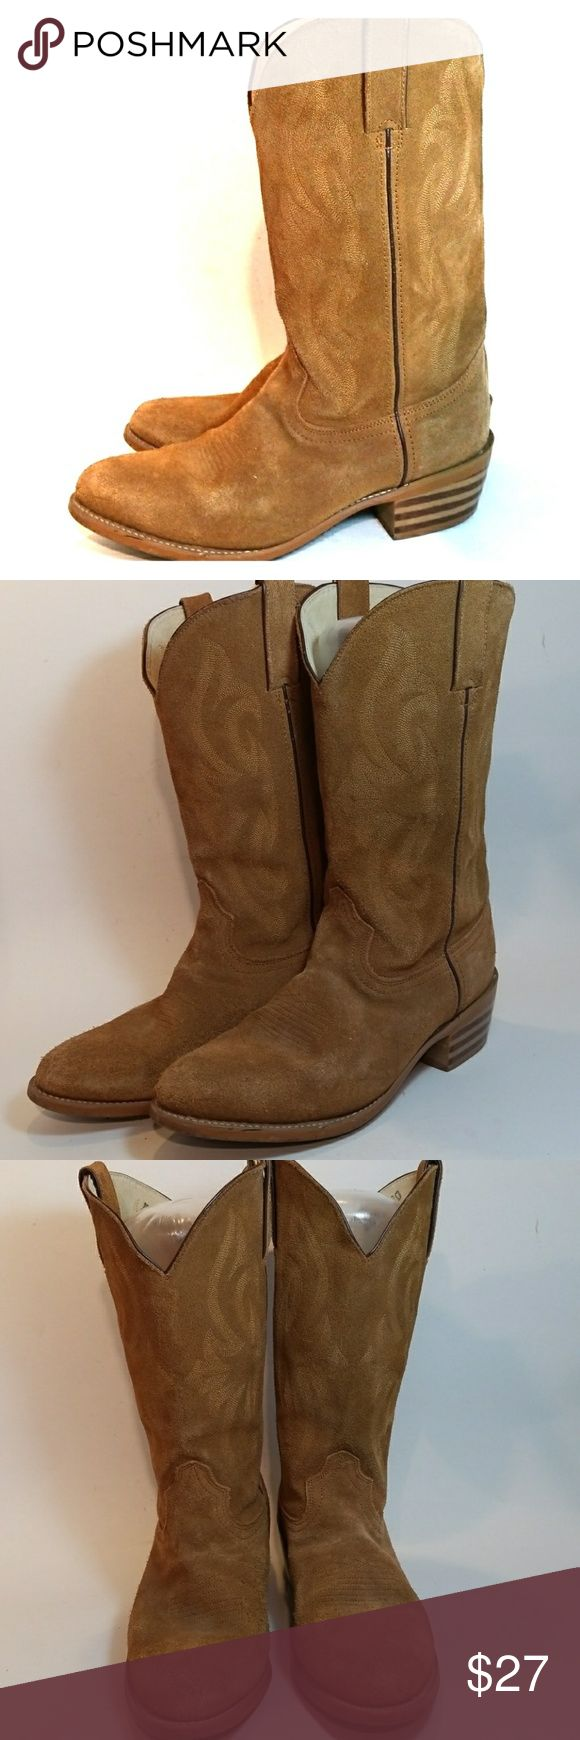 DURANGO WOMEN'S COWBOY BOOTS SIZE 7.5 EE Western, floral, style tall boots. Good condition. Durango Shoes Heeled Boots